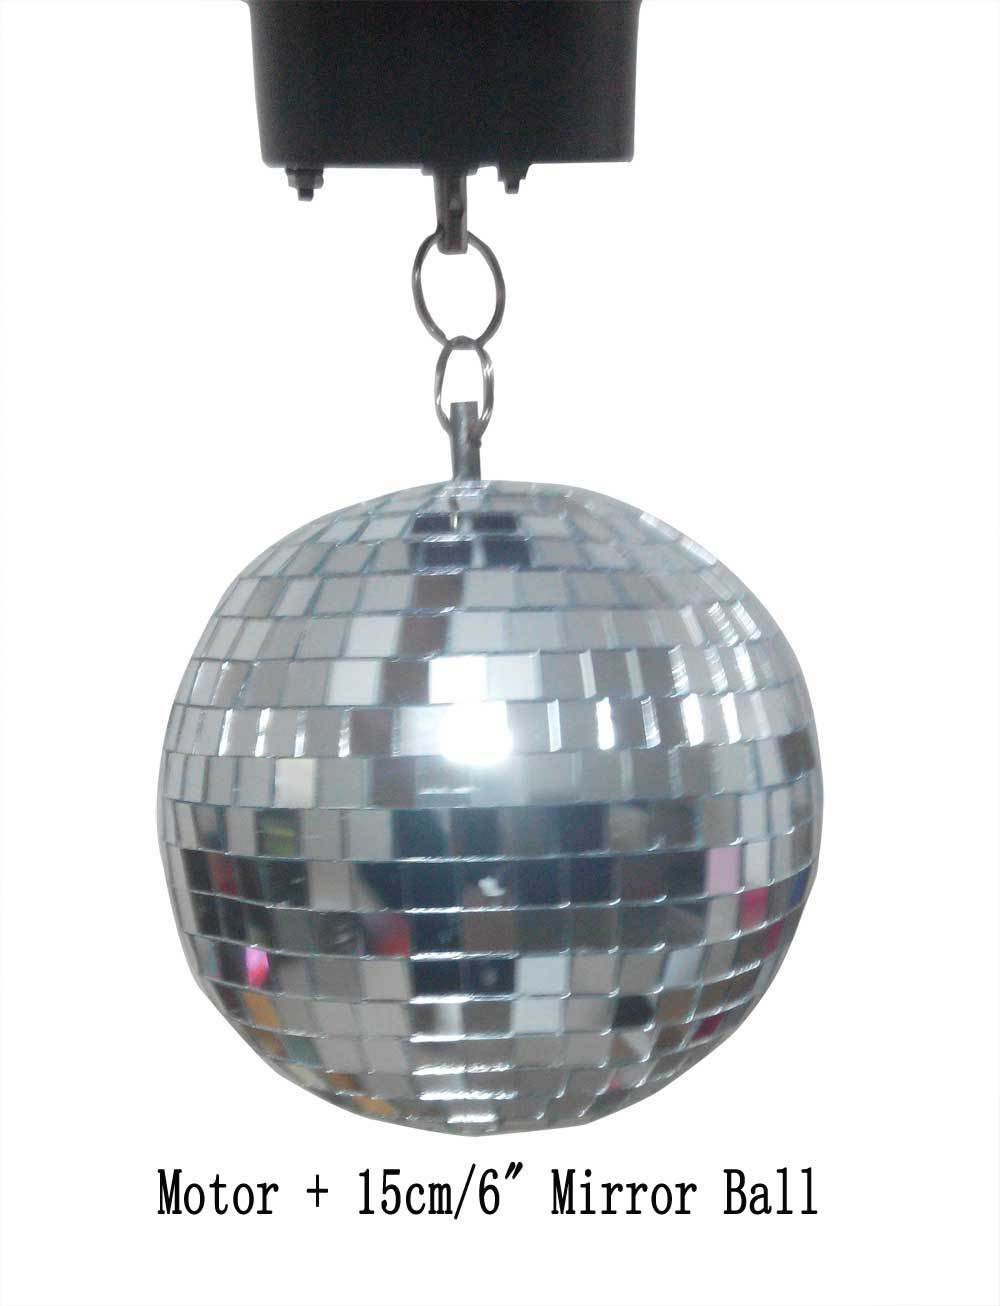 15cm clear glass rotating mirror ball 6 disco DJ party lighting with AC 110V or 220v mirror ball motor ABC-MB-15cm-Motor<br><br>Aliexpress